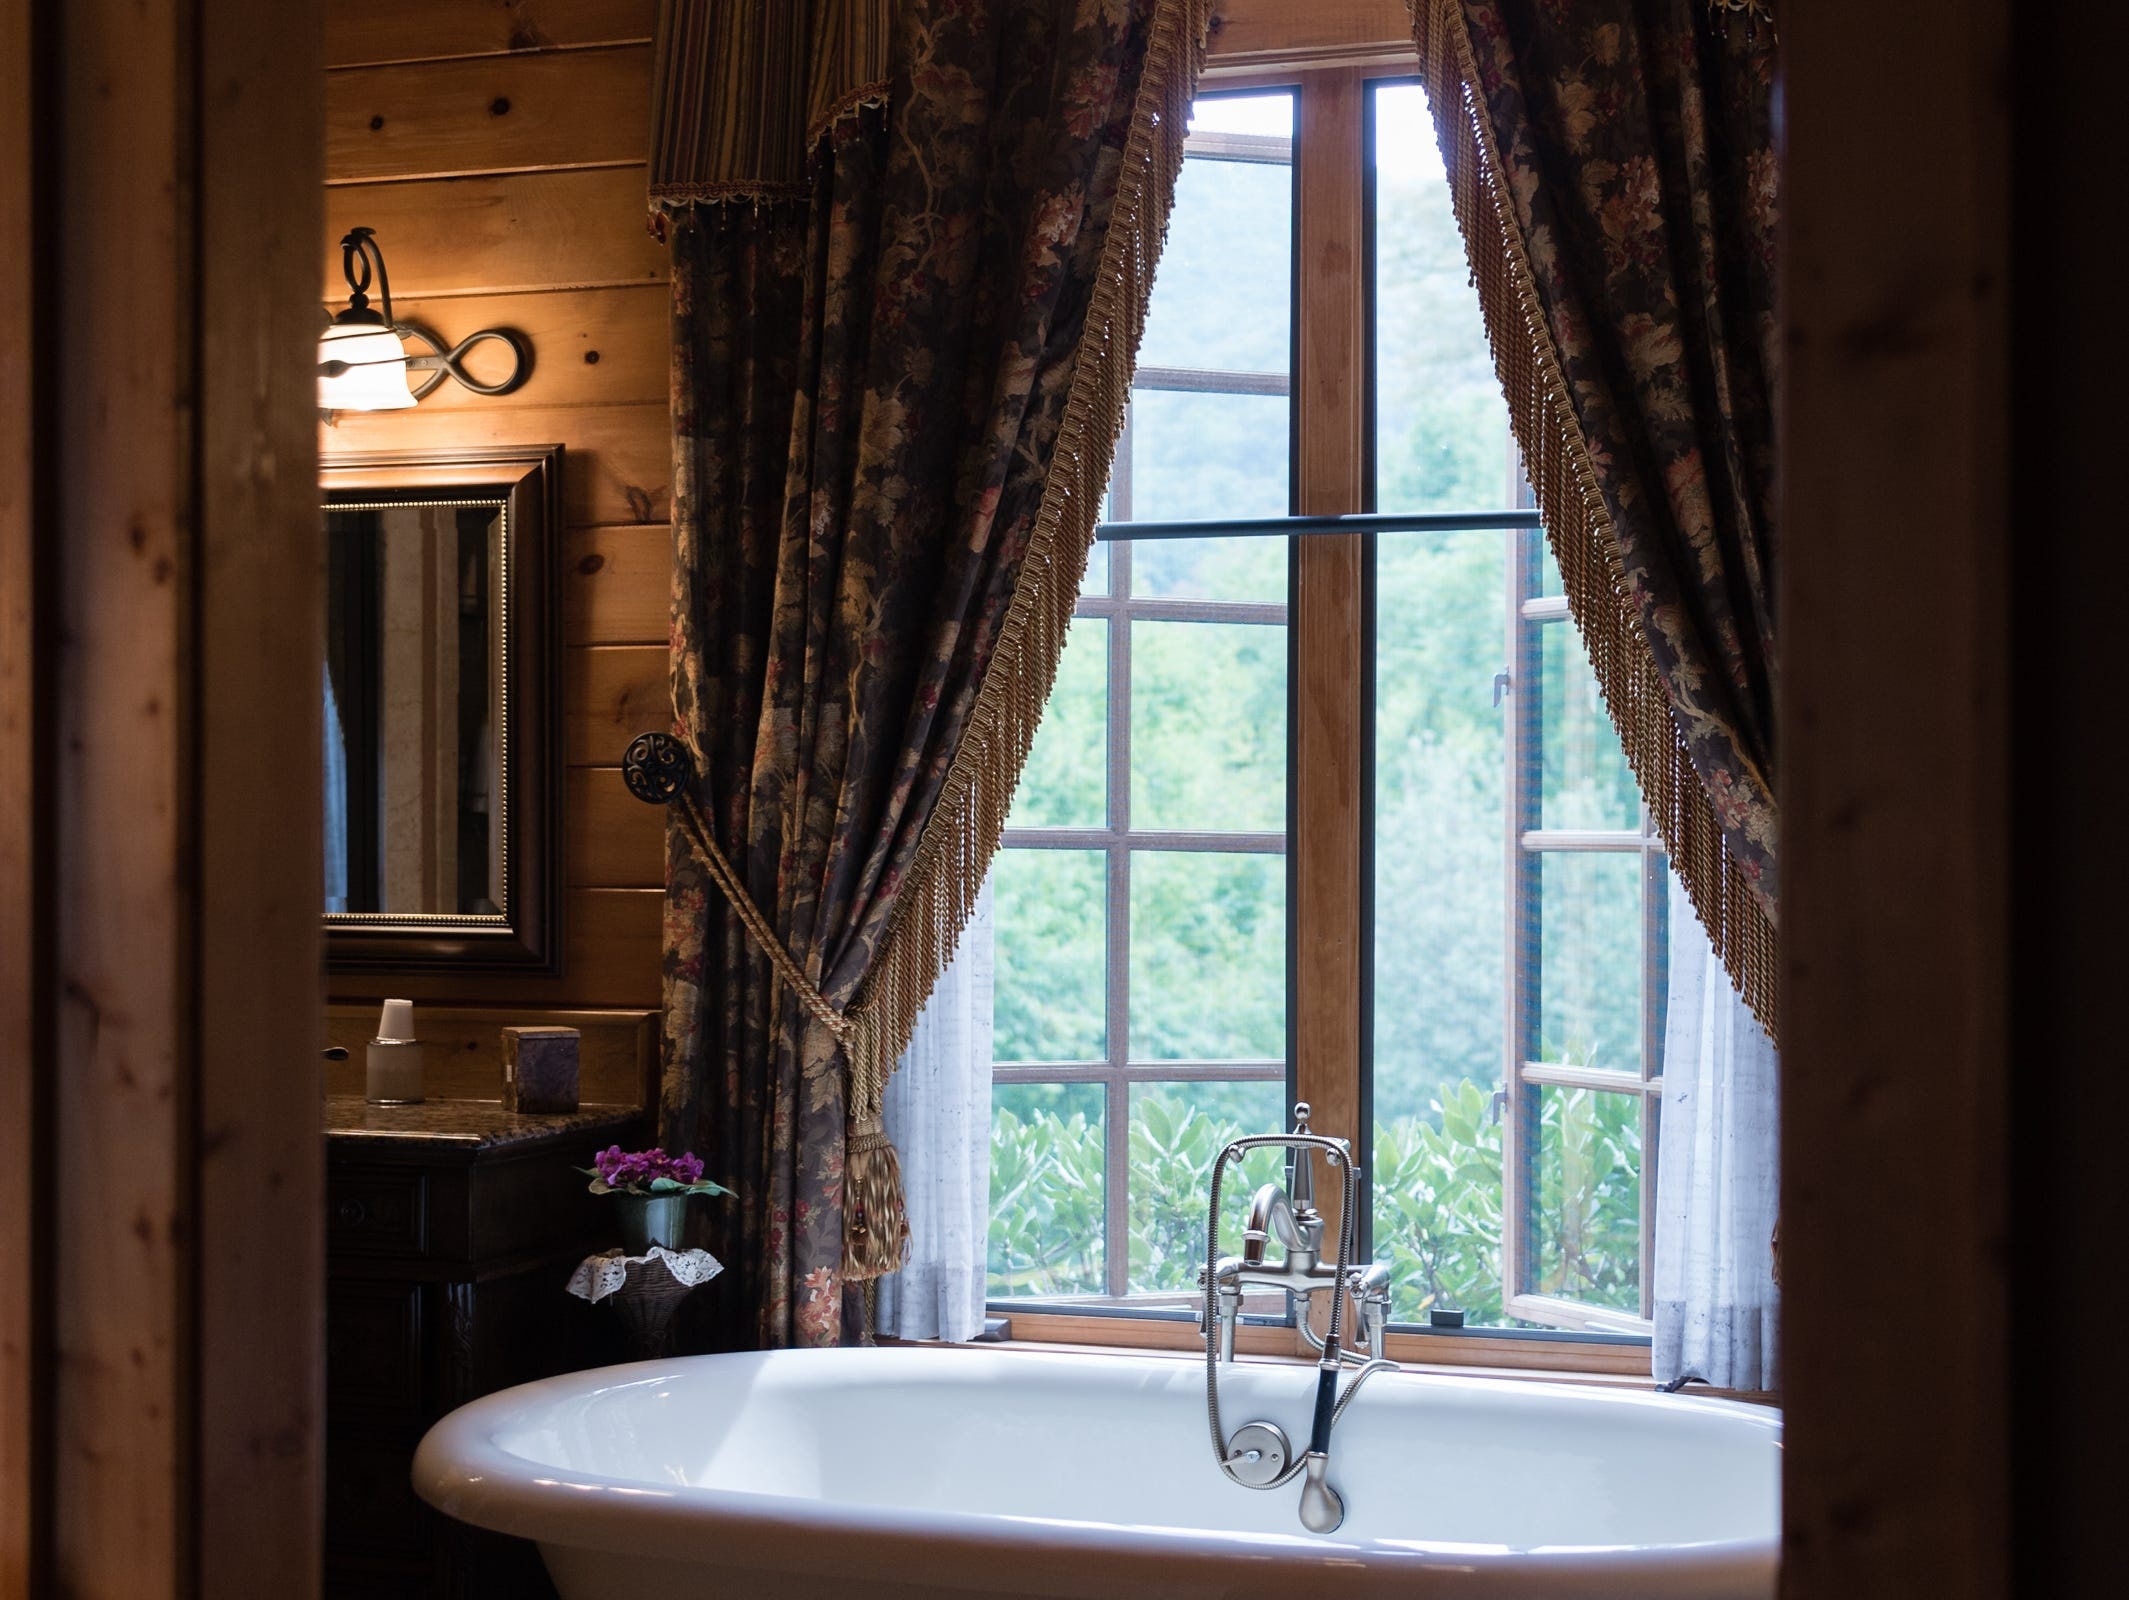 The master bathroom of Dan and Belle Fangmeyer's log cabin in Waynesville.